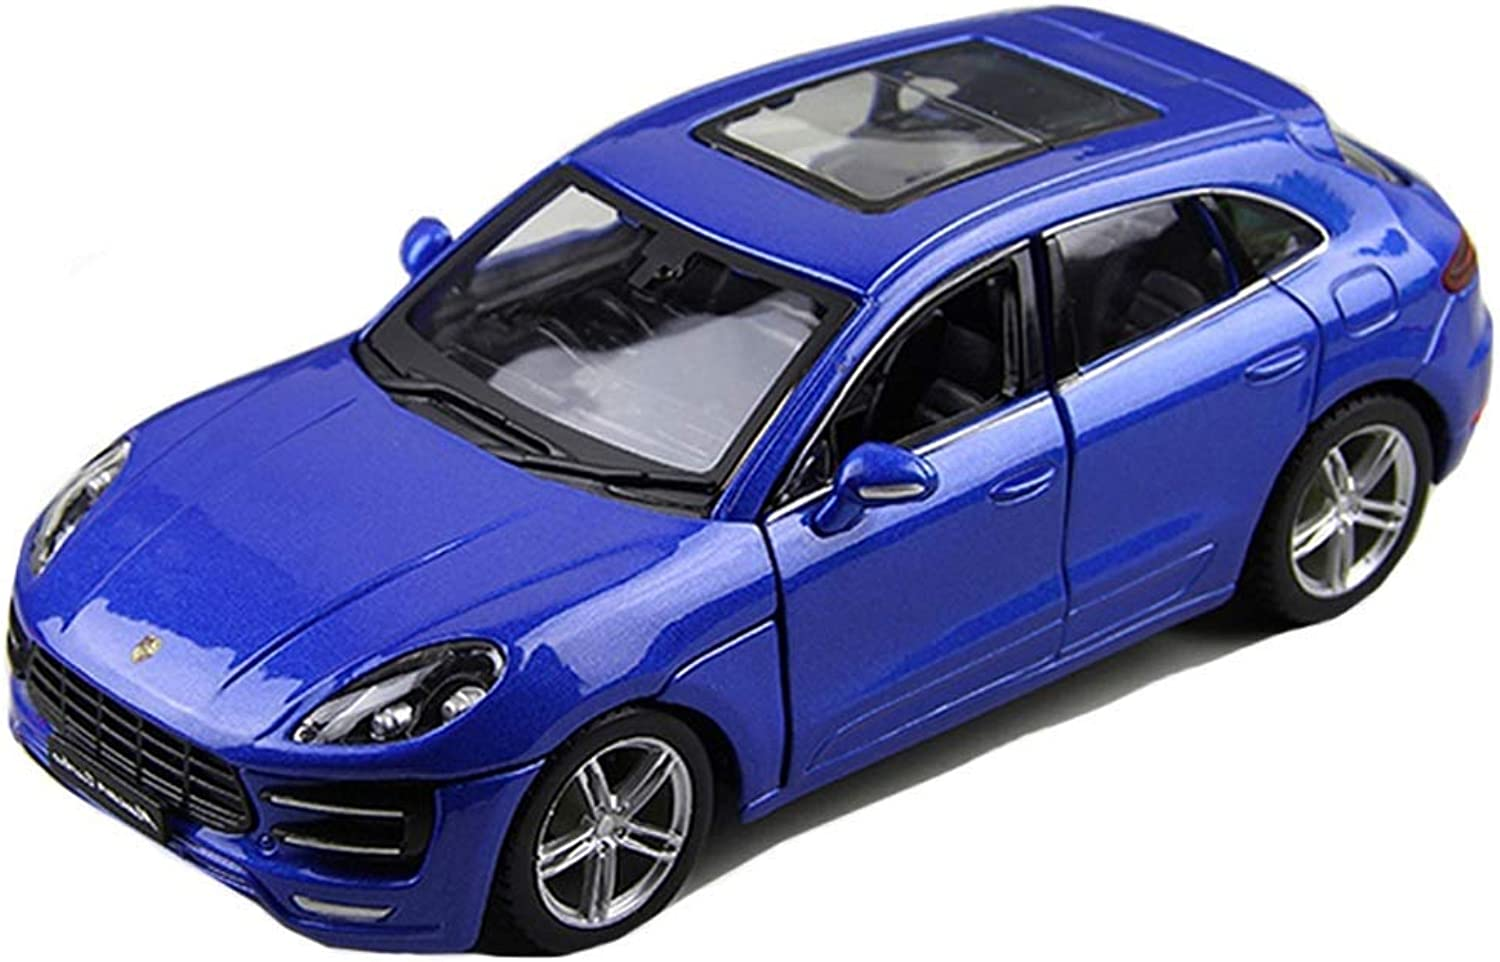 GBY Die Casting Model Car  Simulation alloy toy car model static car model collection decorative alloy car model 1 24 Alloy model car ( color   bluee )